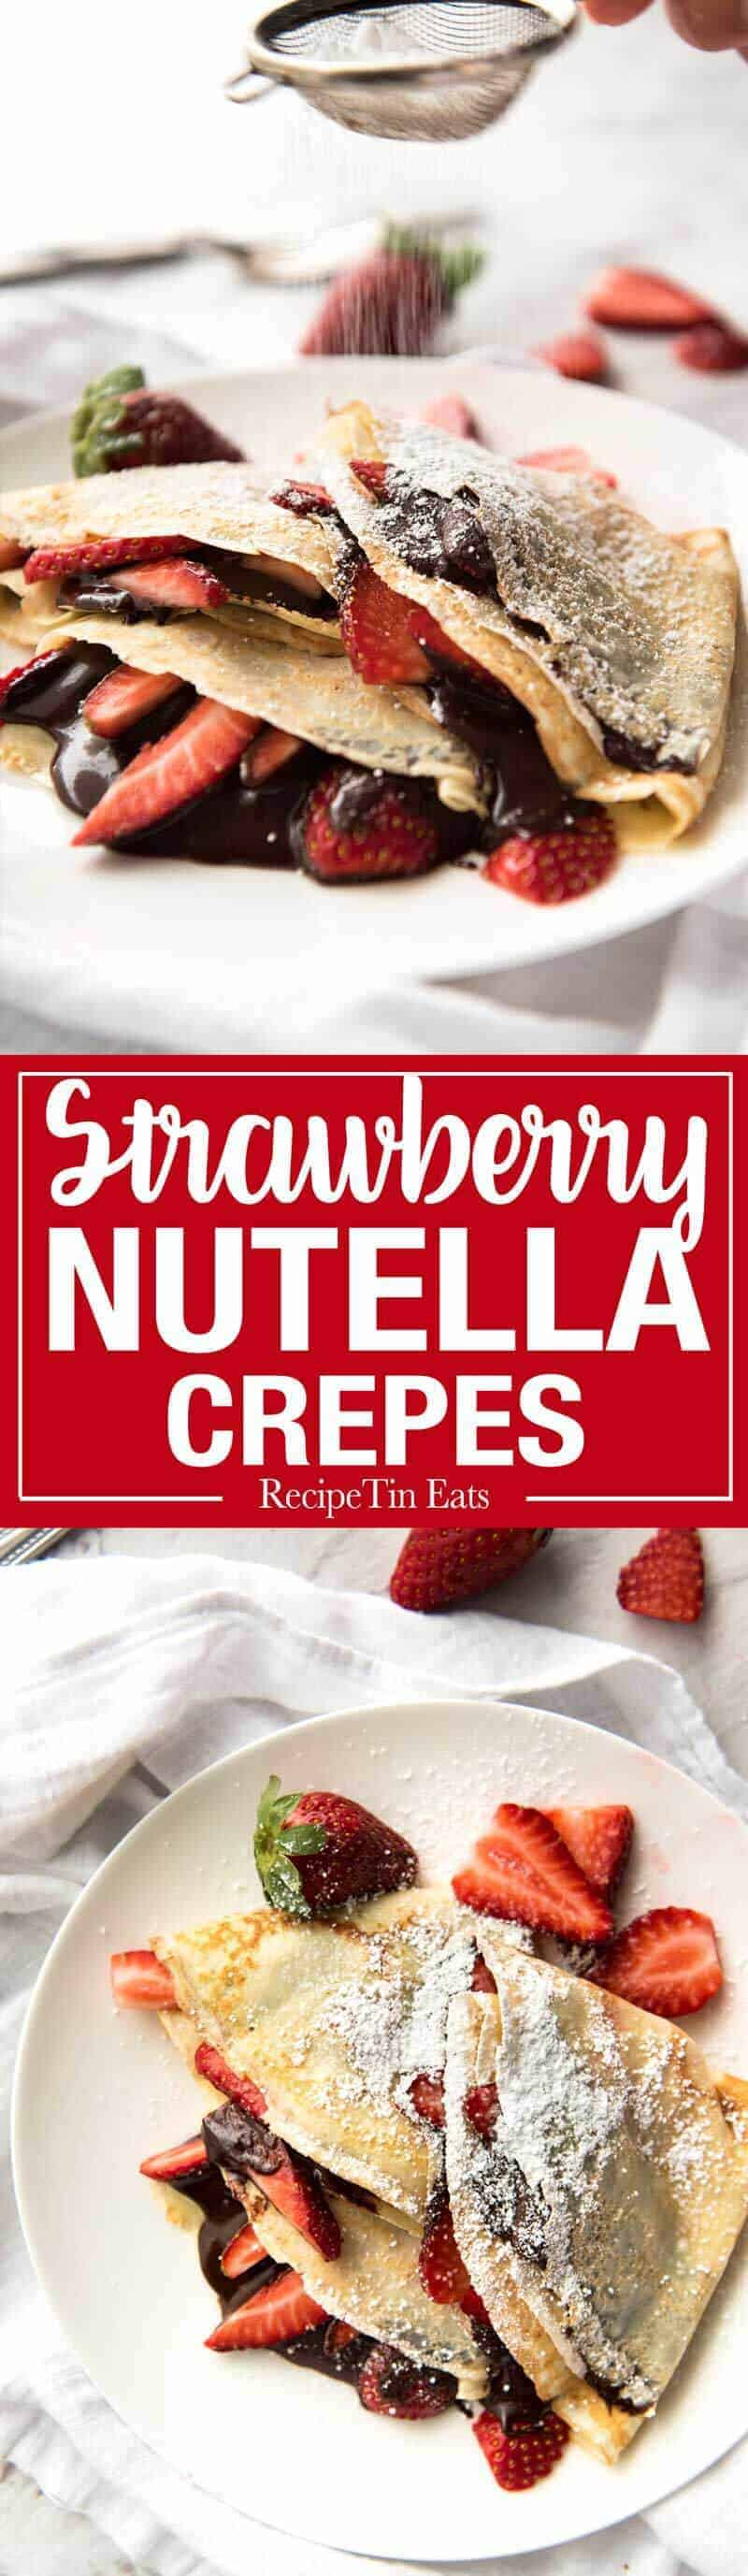 Nutella Crepes with Strawberries - The batter is a 10 second job when made with a blender! And you do not need a crepe pan, just a skillet! recipetineats.com